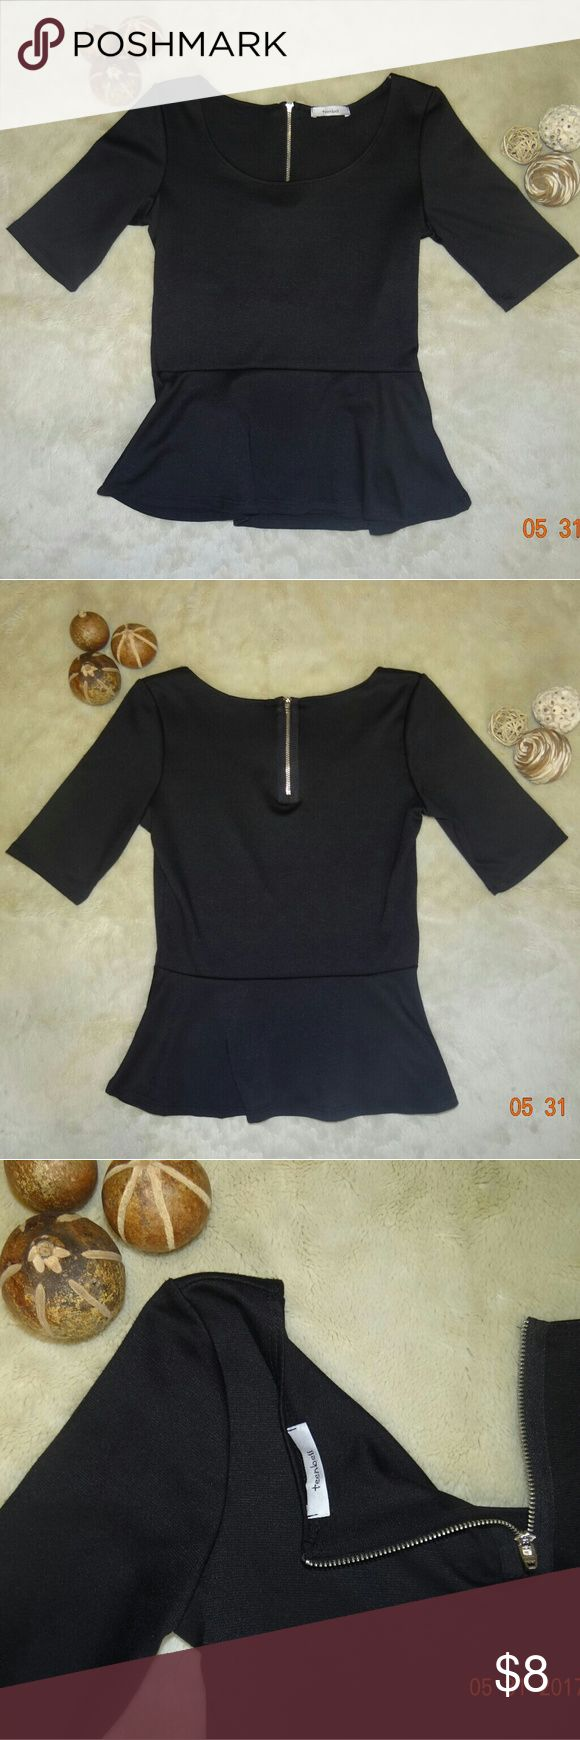 Black Peplum Top This item is used but still in good condition. Like new. Black peplum top brand teenbell in woman's size small. It has a back zipper closure. teenbell Tops